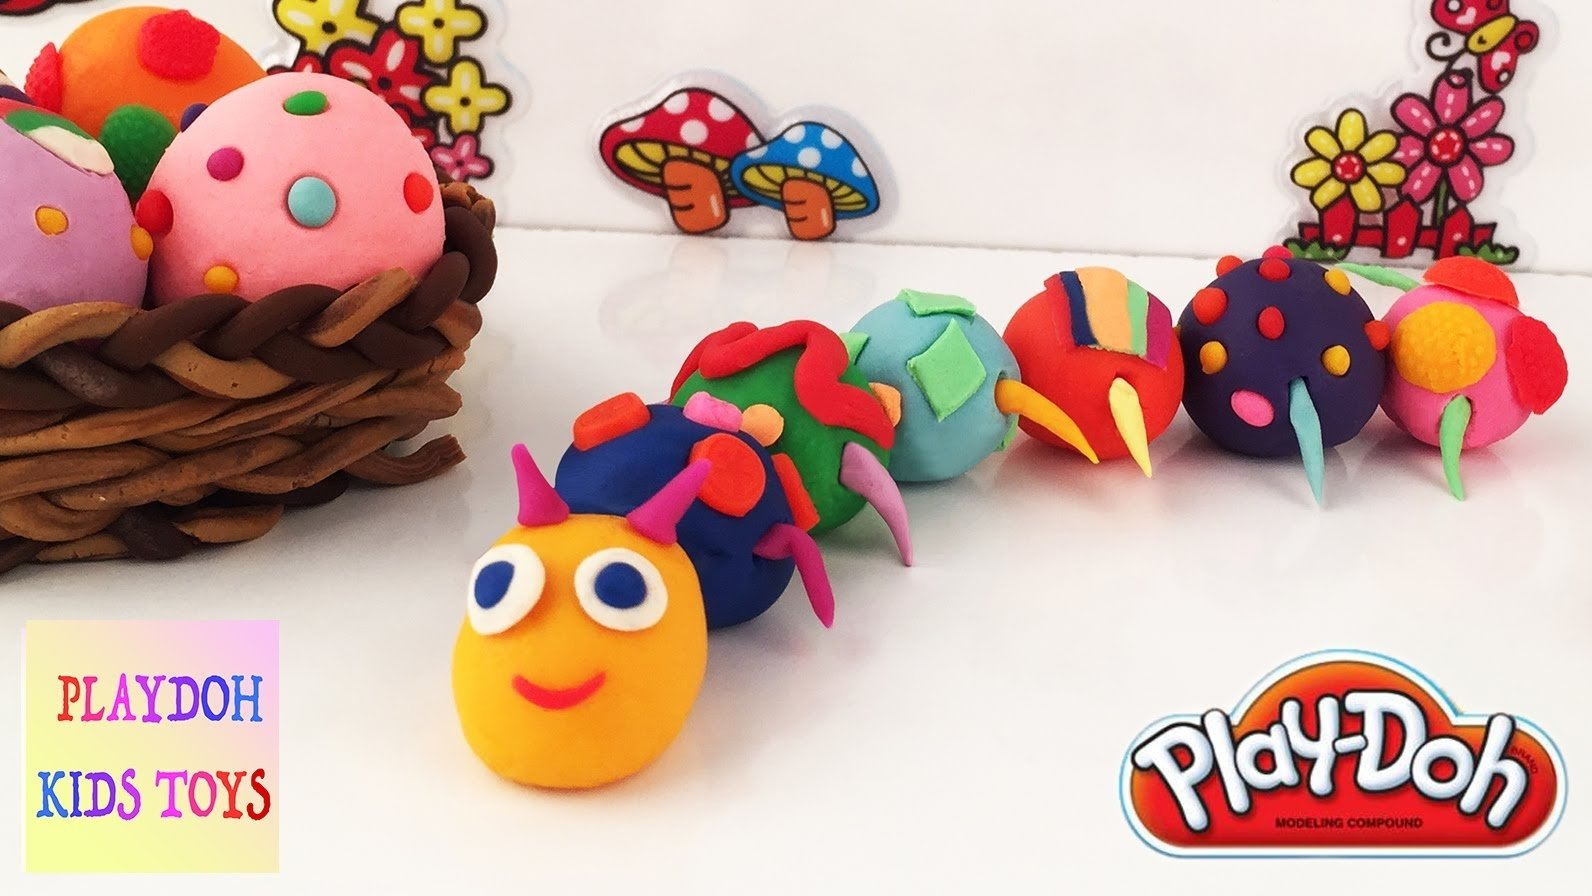 10 Wonderful Play Doh Ideas For Kids play doh kids fun crafts animals playdough learning activities 2021